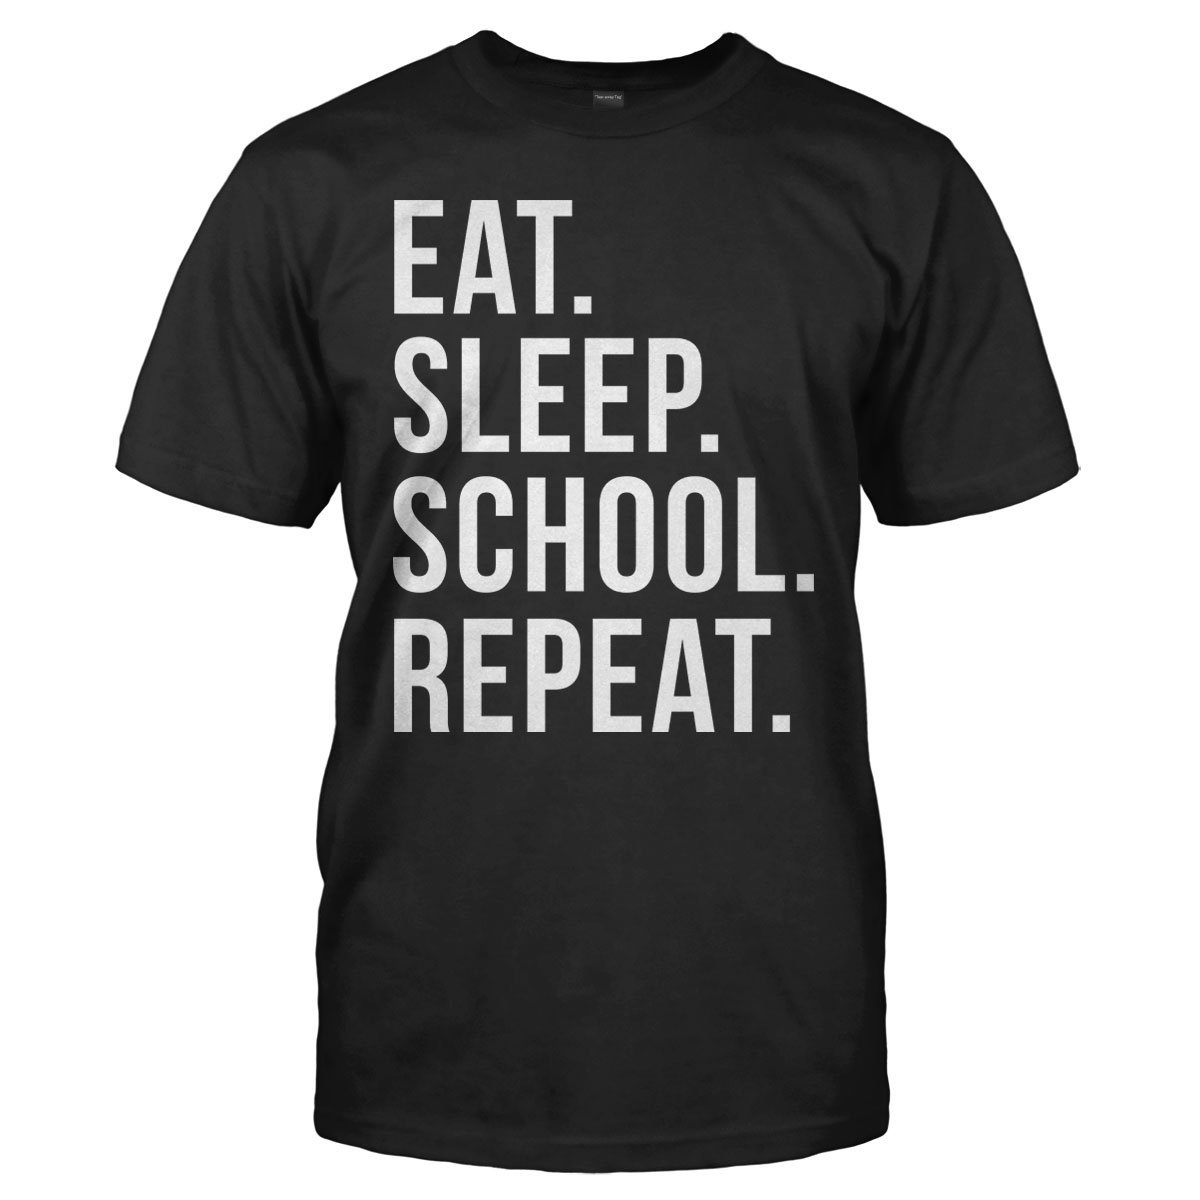 Eat. Sleep. School. Repeat. - T Shirt